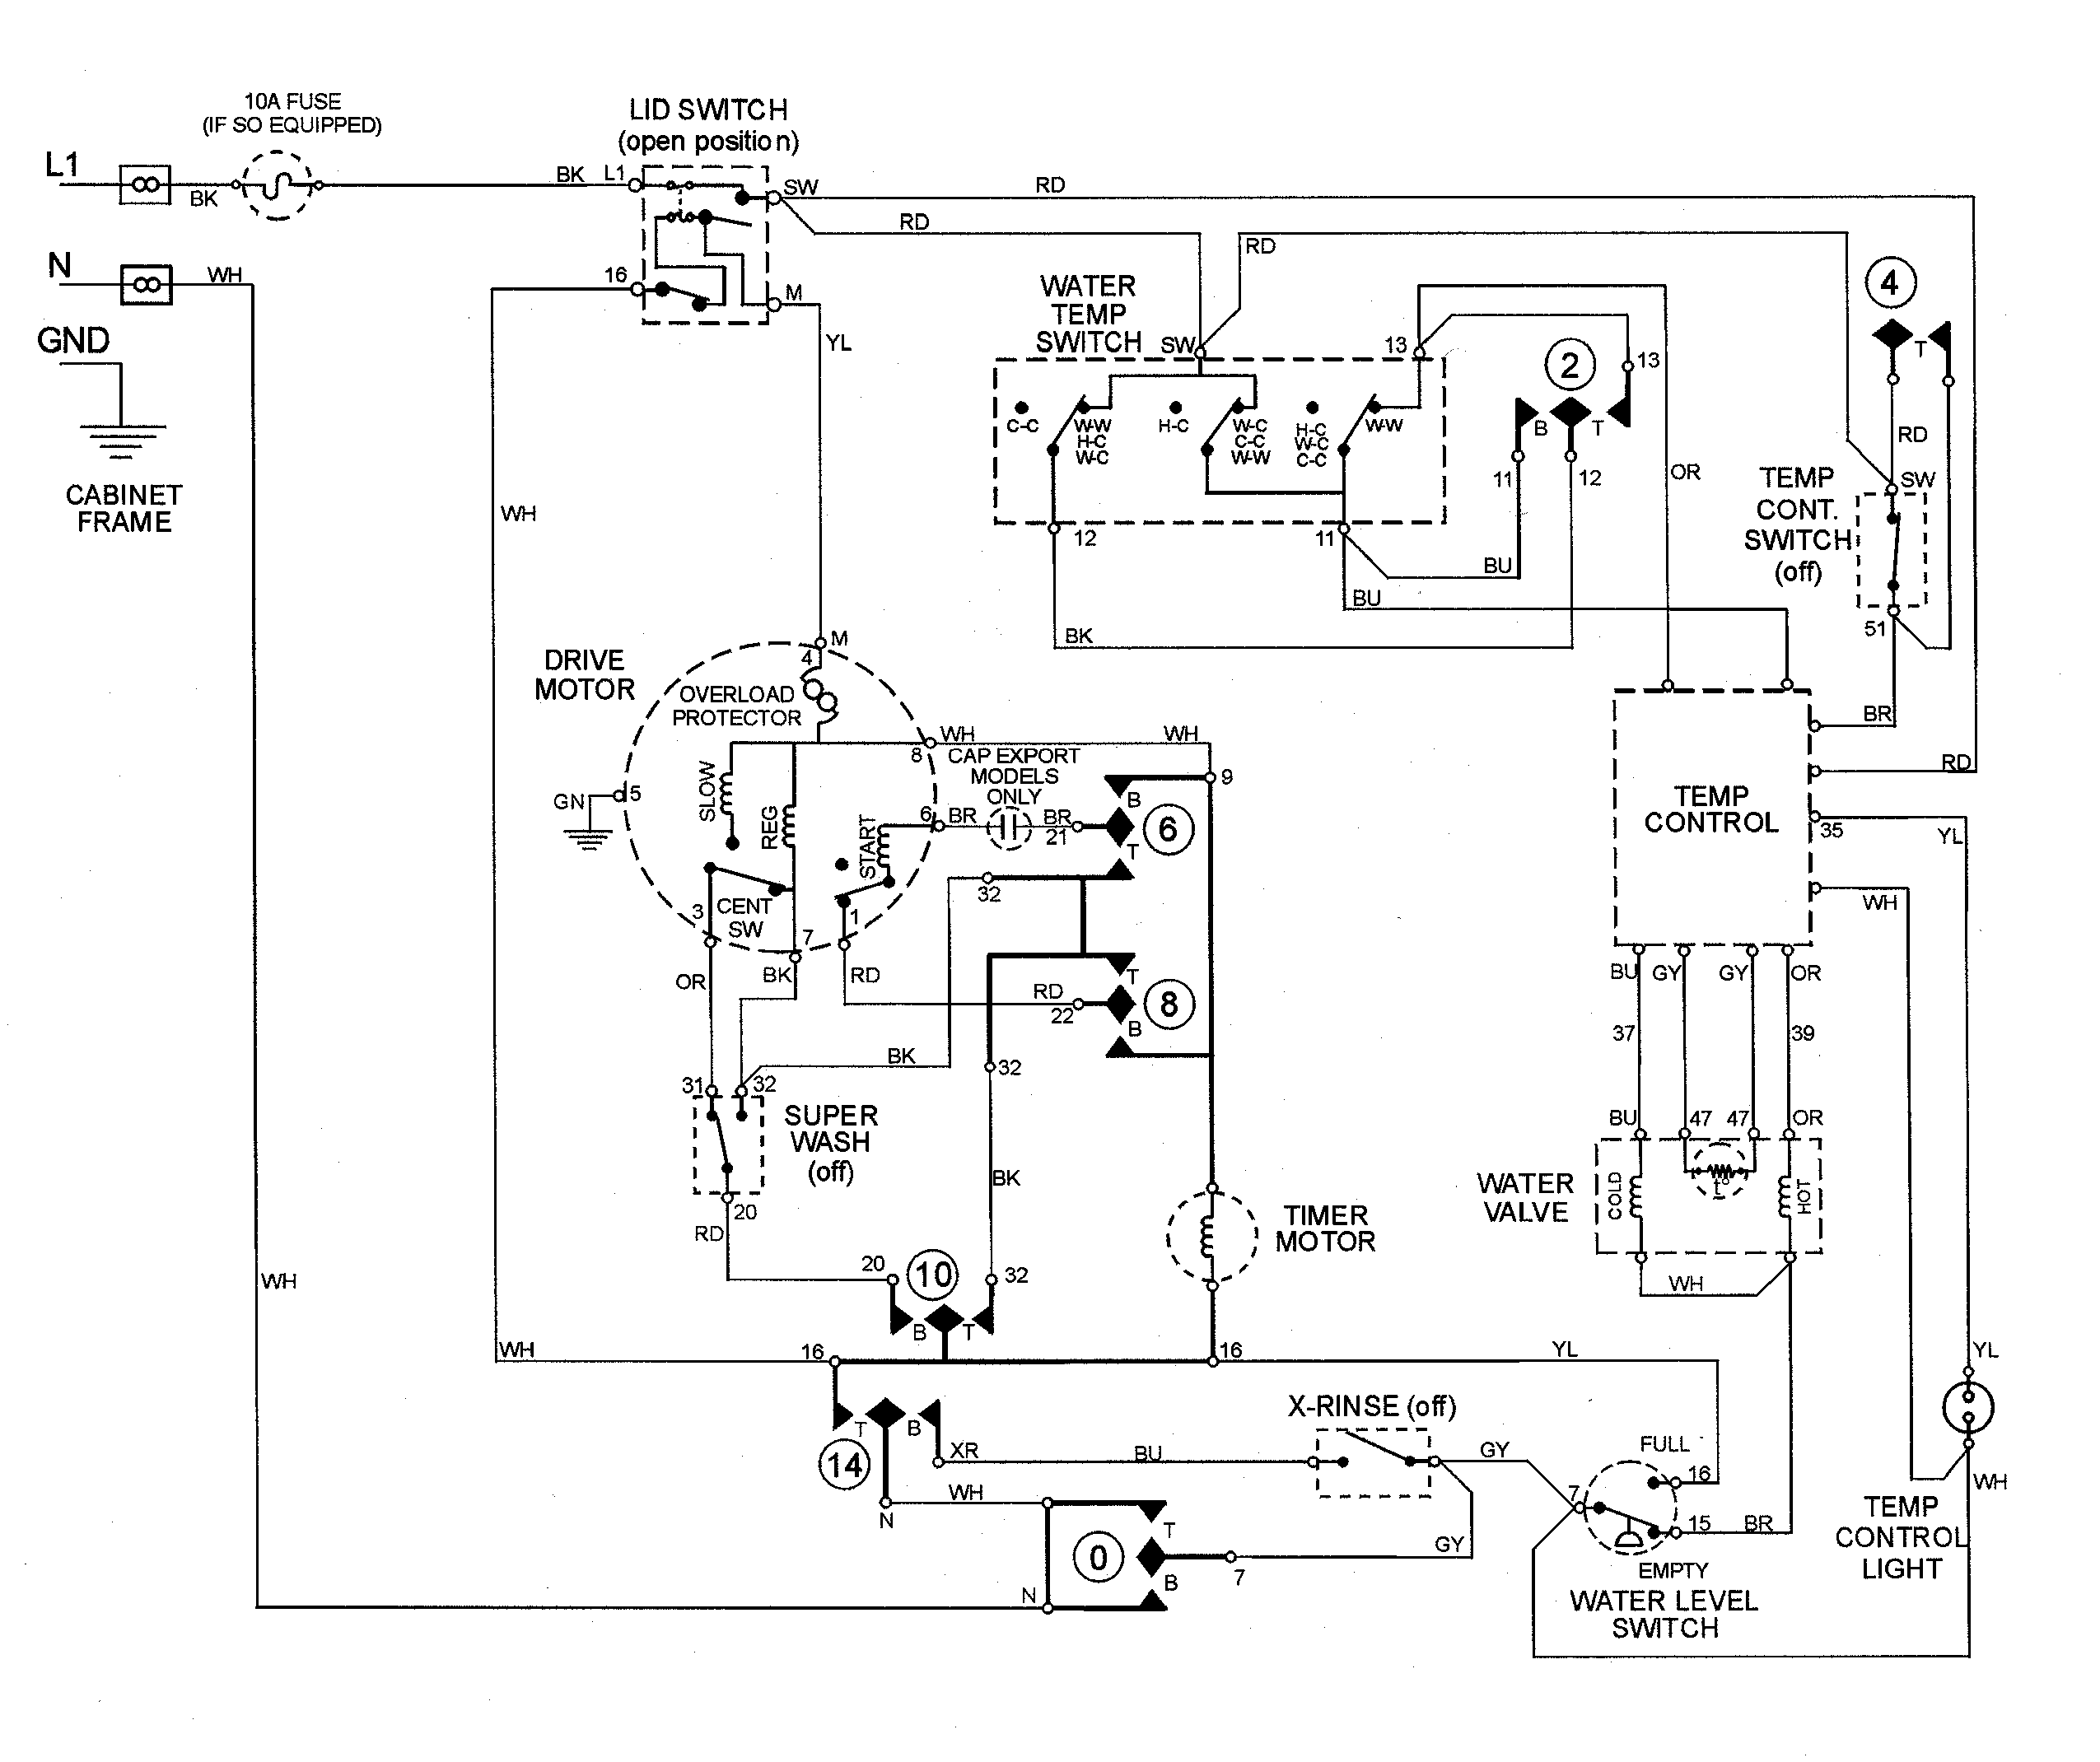 dbfe84c1294a289a6a6d42ba64109ee4 washing machine motor wiring diagram Chevrolet Truck Schematics at soozxer.org